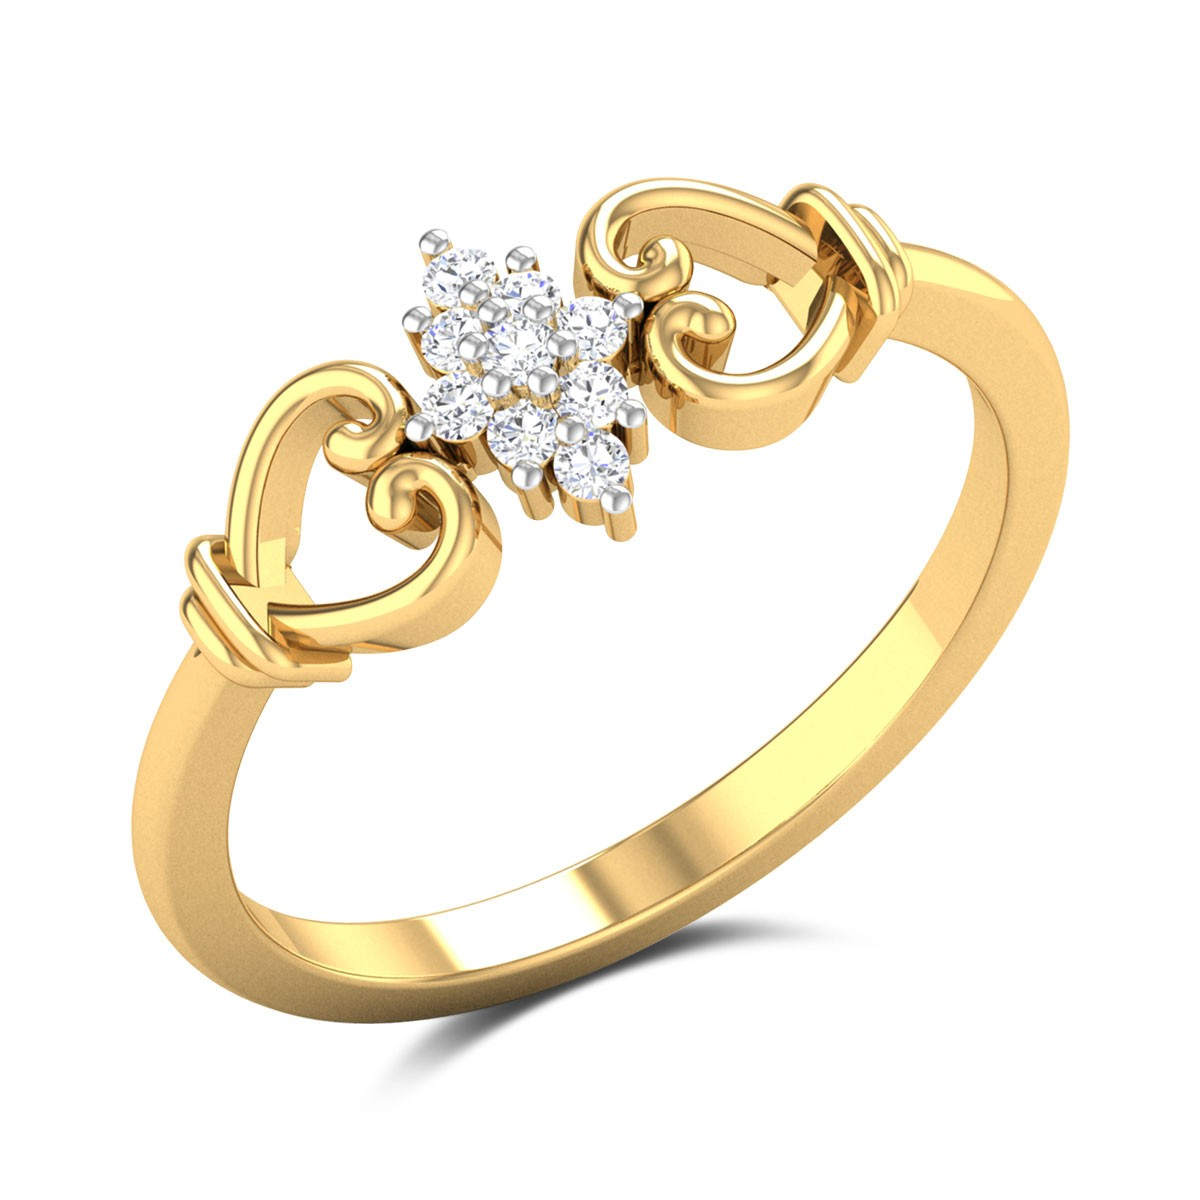 Buy Lucy 9 Stone Diamond Engagement Ring in 1.88 Gms Gold Online